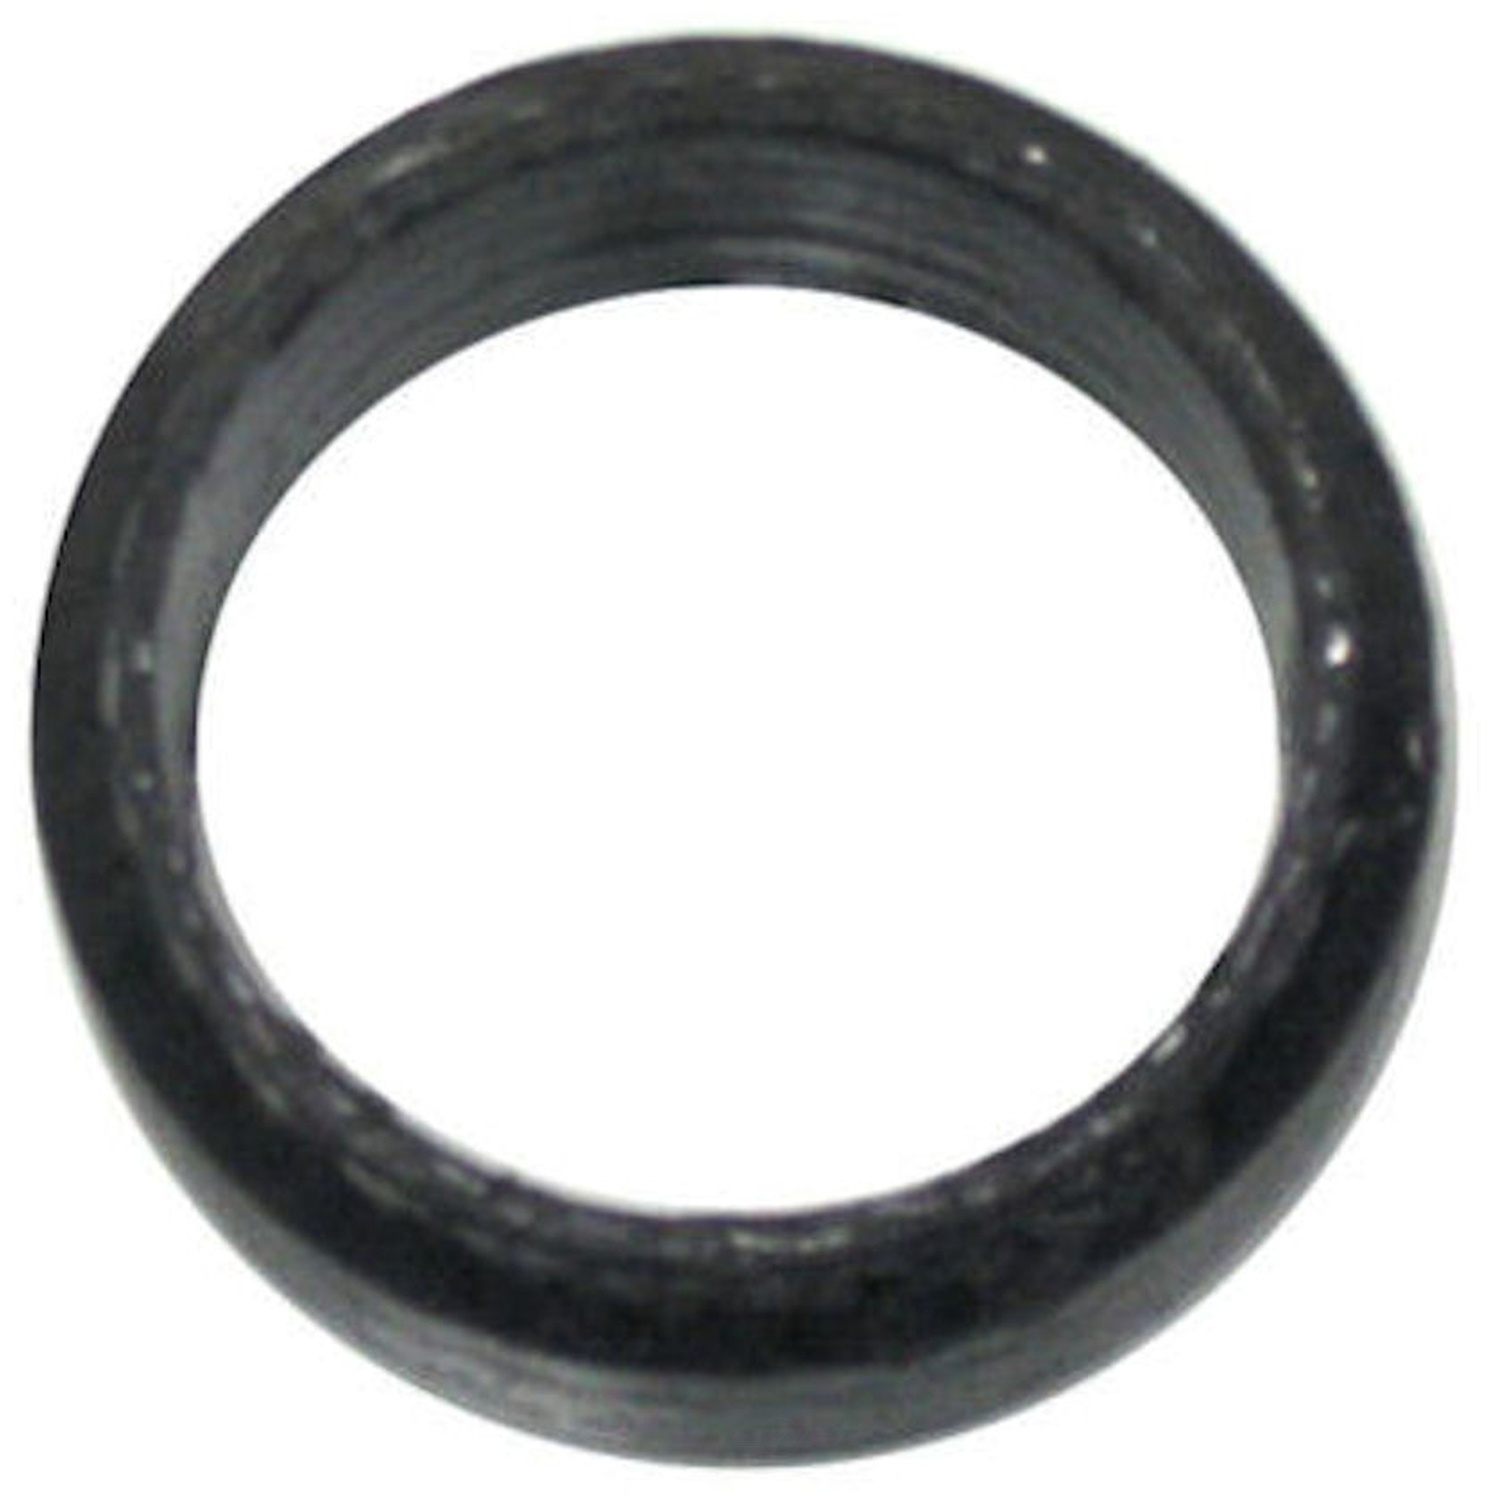 BOSAL 49 STATE CONVERTERS - Exhaust Pipe Flange Gasket (Right) - BSF 256-798